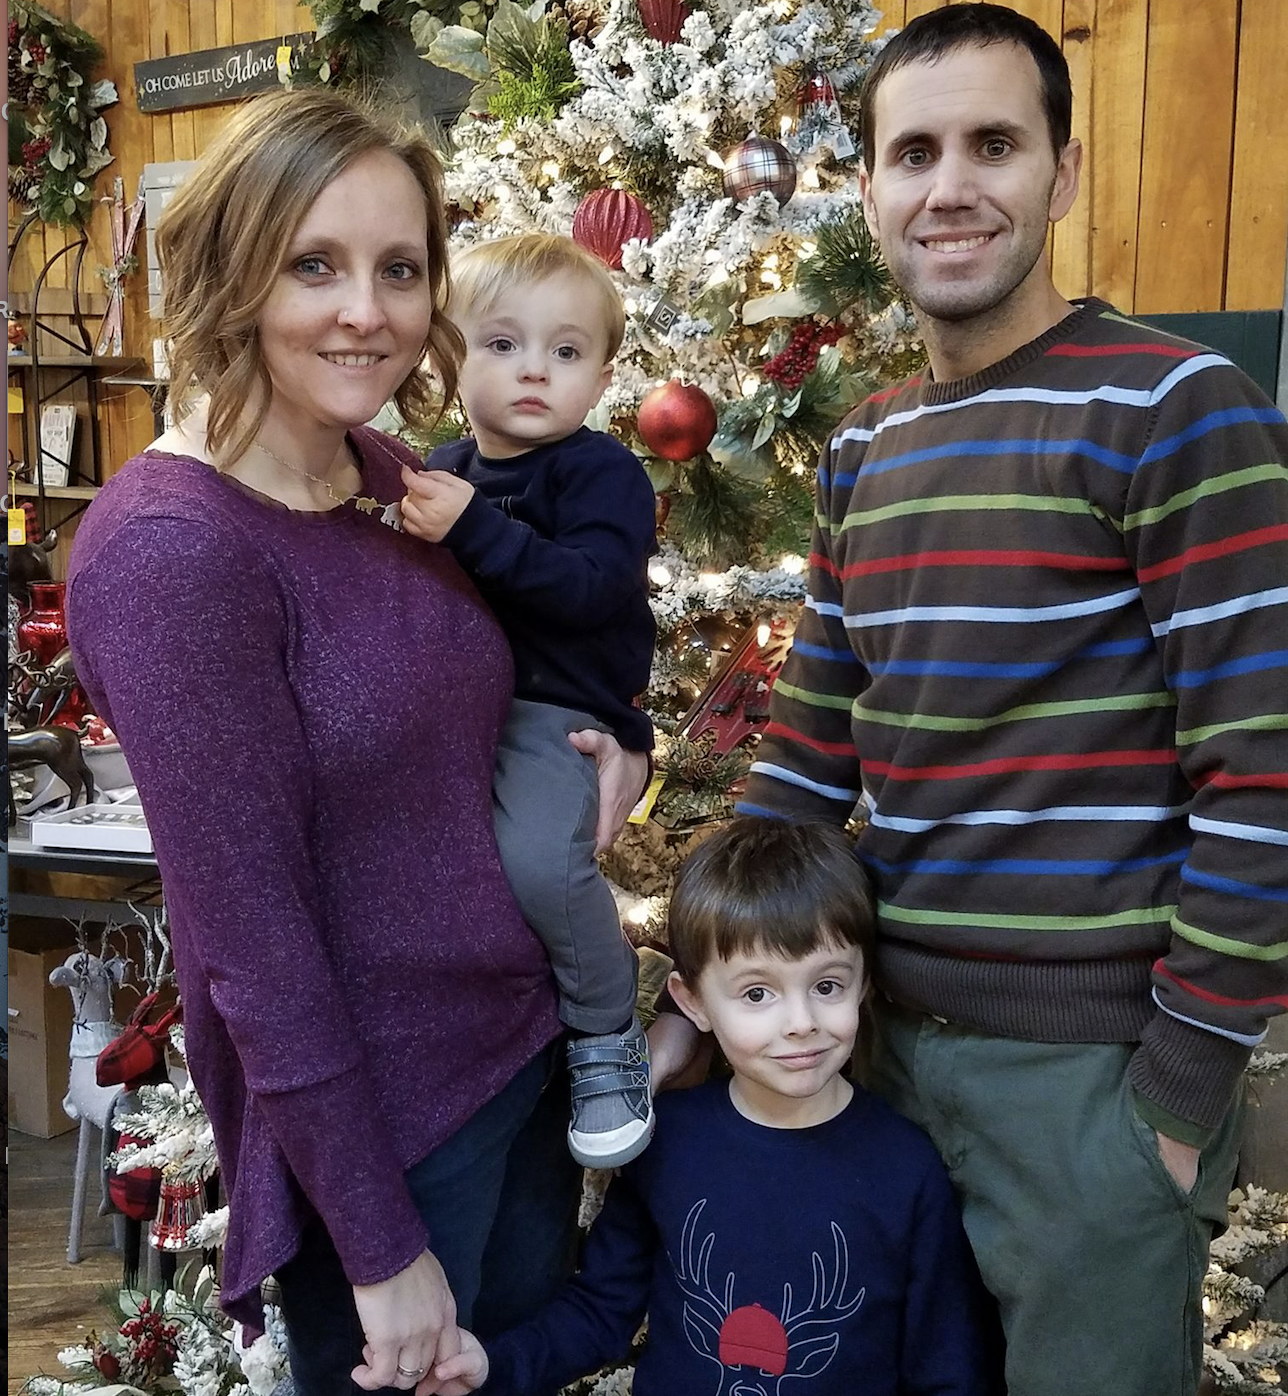 - TJ Inman - TJ, a native of Indiana, is a lifelong IU fan and a 2010 graduate of the IU School of Journalism. He joined Hoosier Huddle in January 2015 and currently resides in Noblesville, IN with his wife and young son.